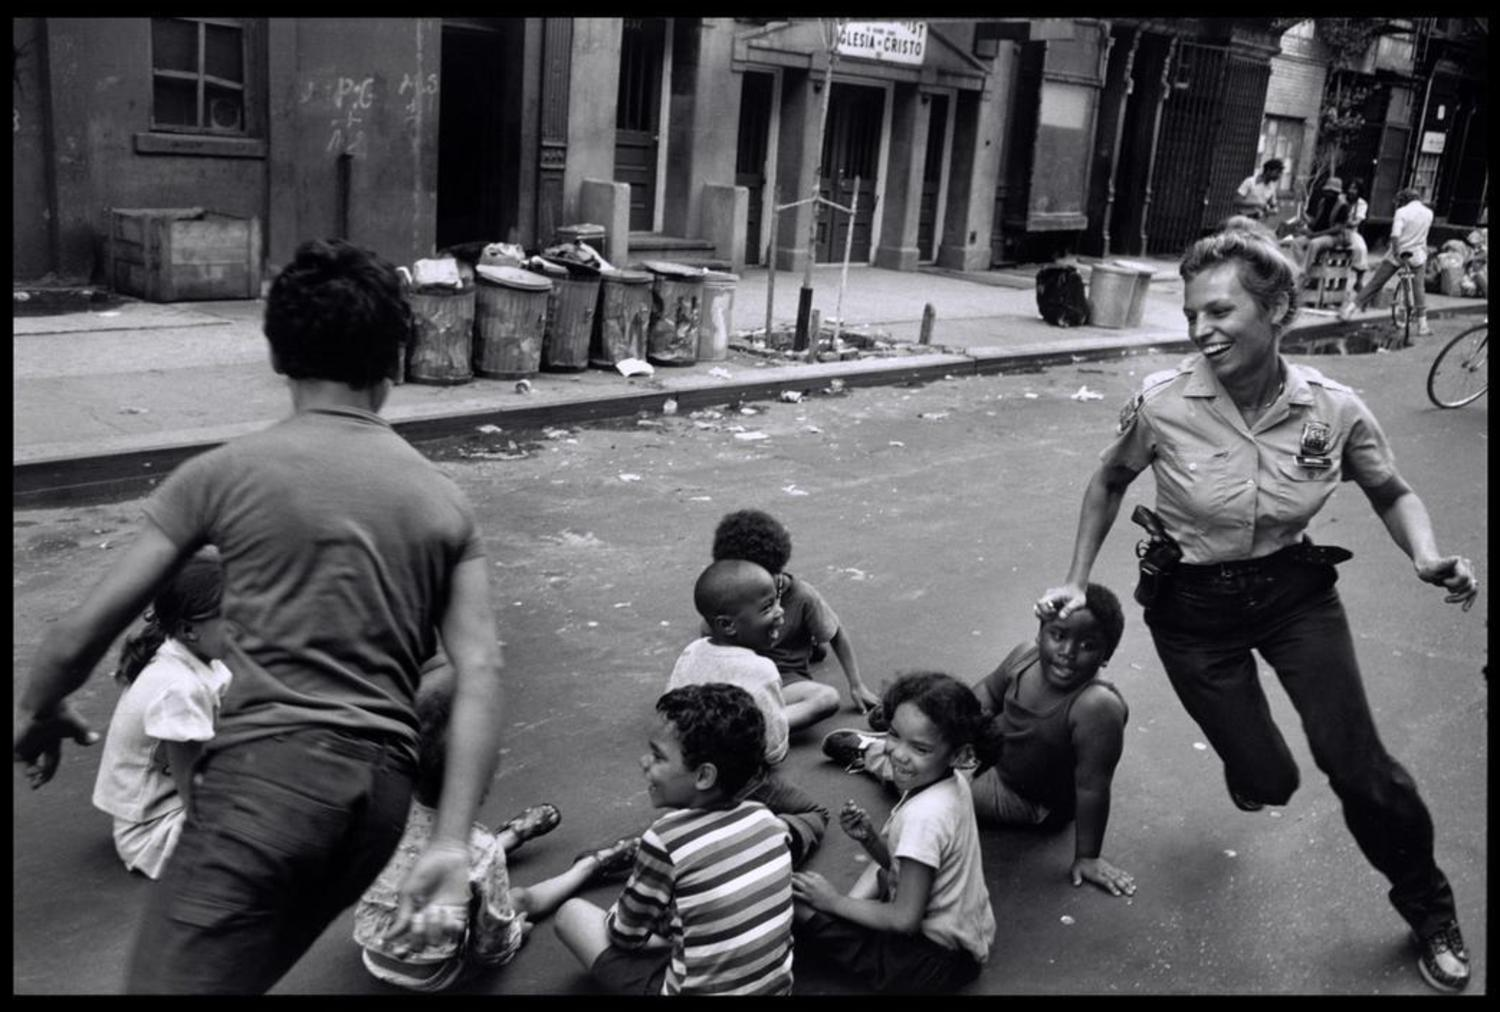 A police woman plays duck duck goose with children in Harlem, NYC, New York, US in 1978.